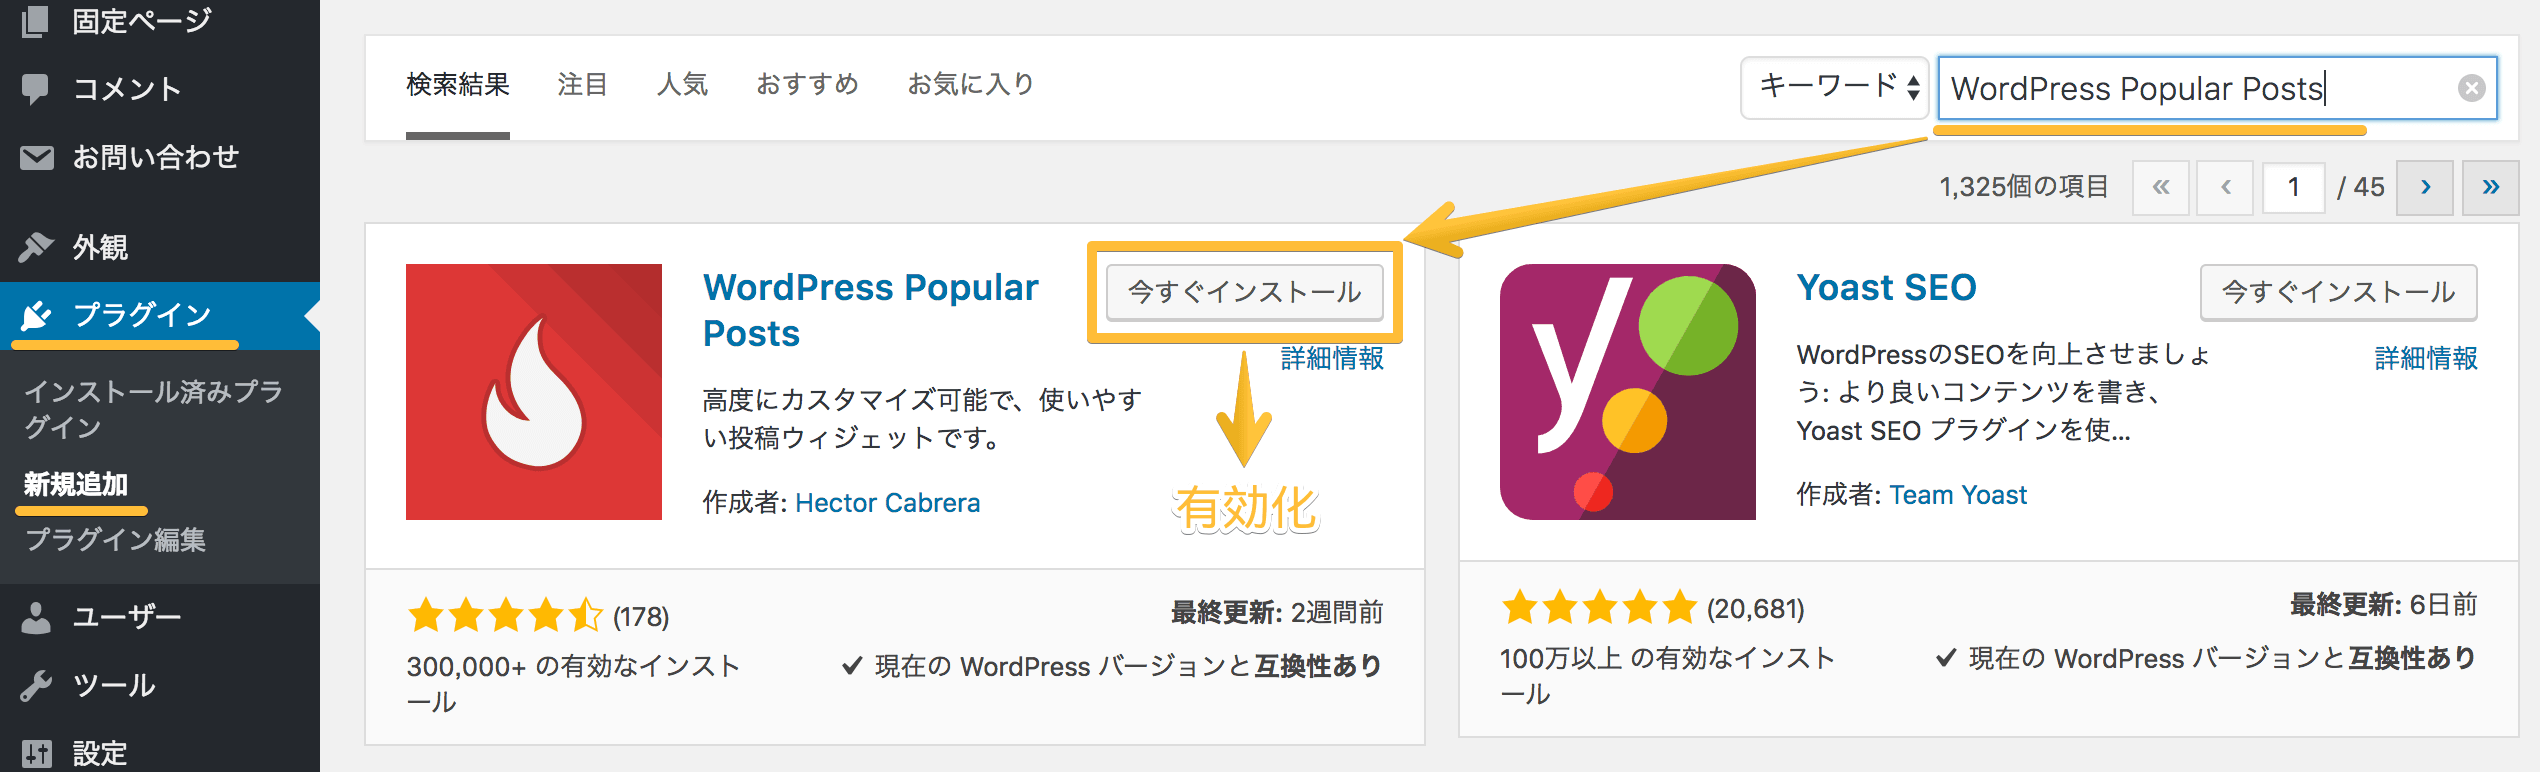 WordPress Popular Postsインストール方法